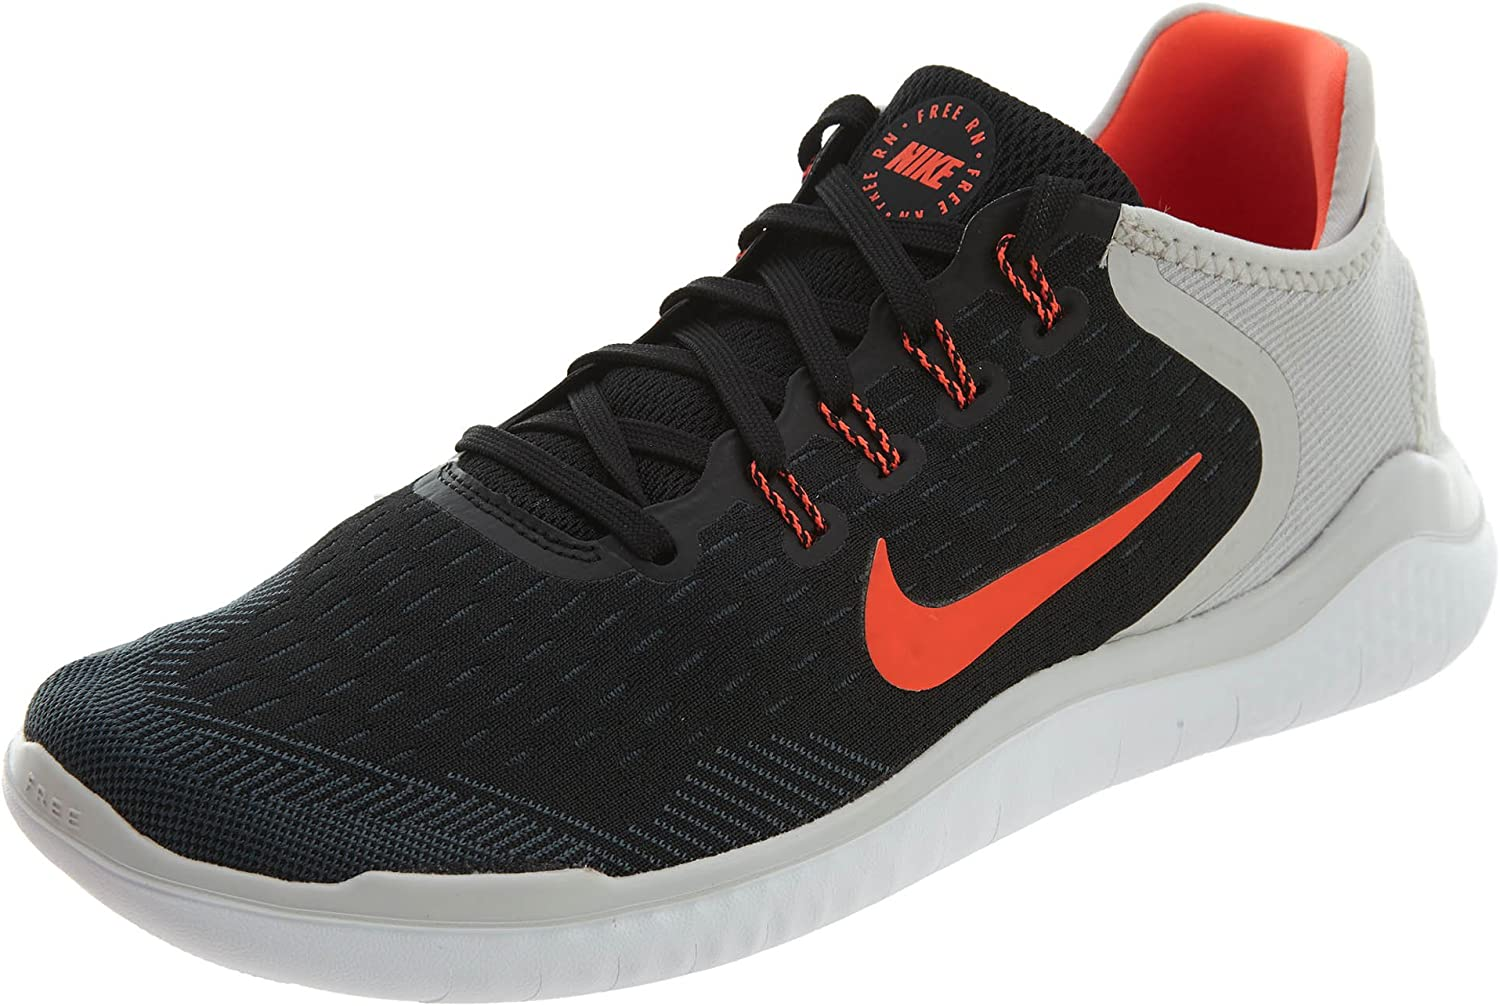 Nike Men's Free RN 2018 Black Total Crimson-Vast Grey-White Running Shoes 10 D M US